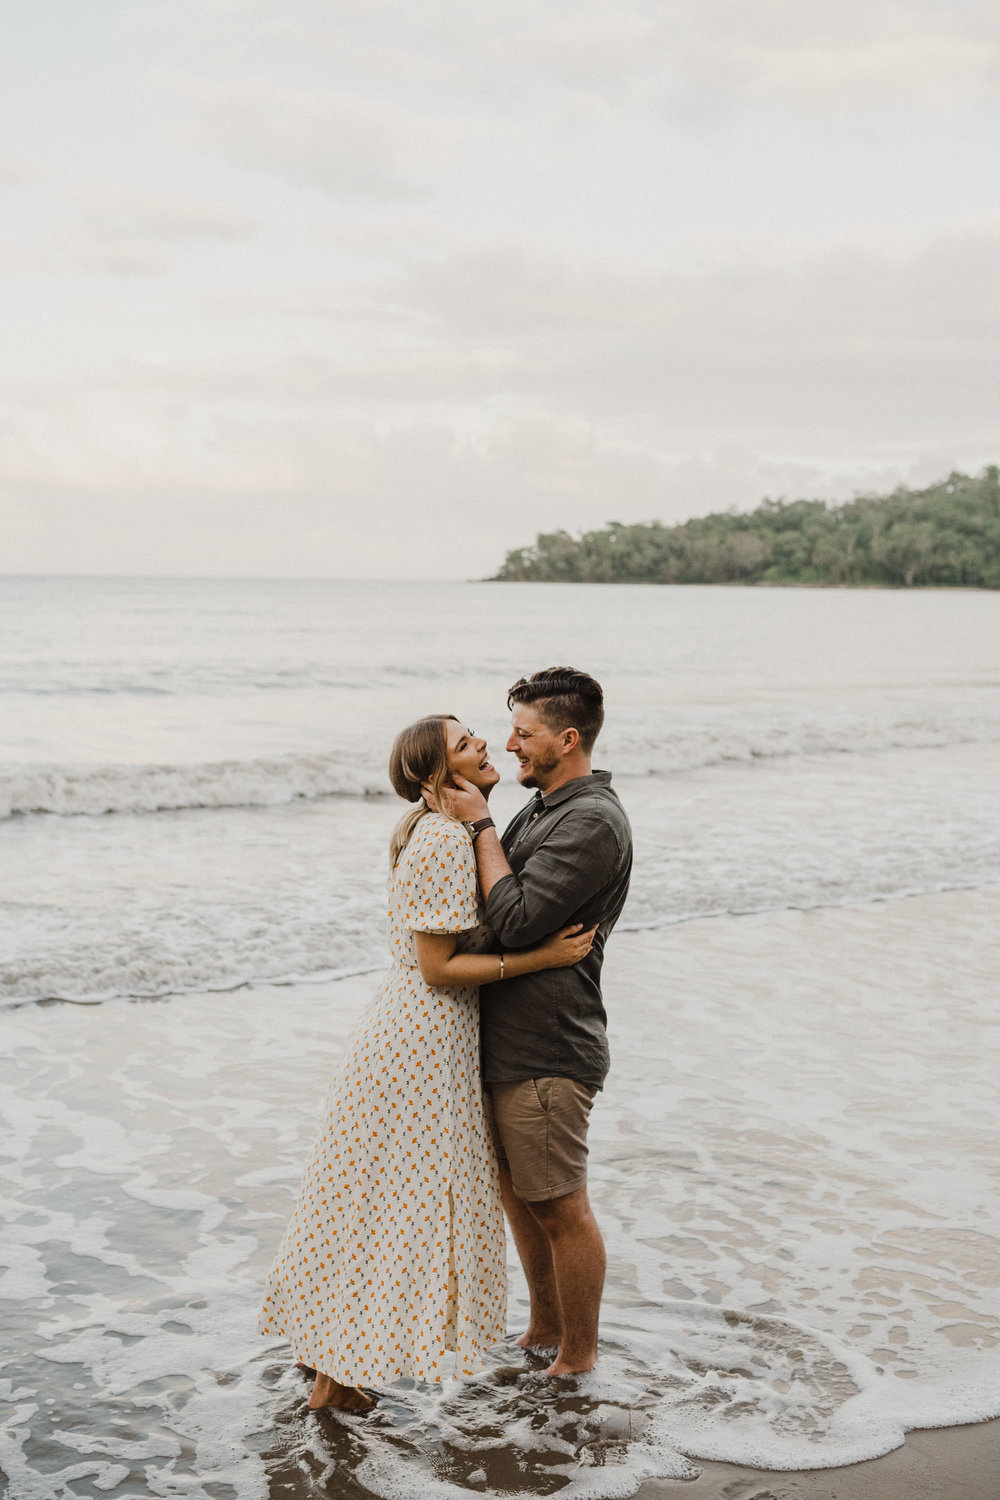 The Raw Photographer - Cairns Wedding Photographer - Beach Engagement Shoot - Candid Picnic-29.jpg